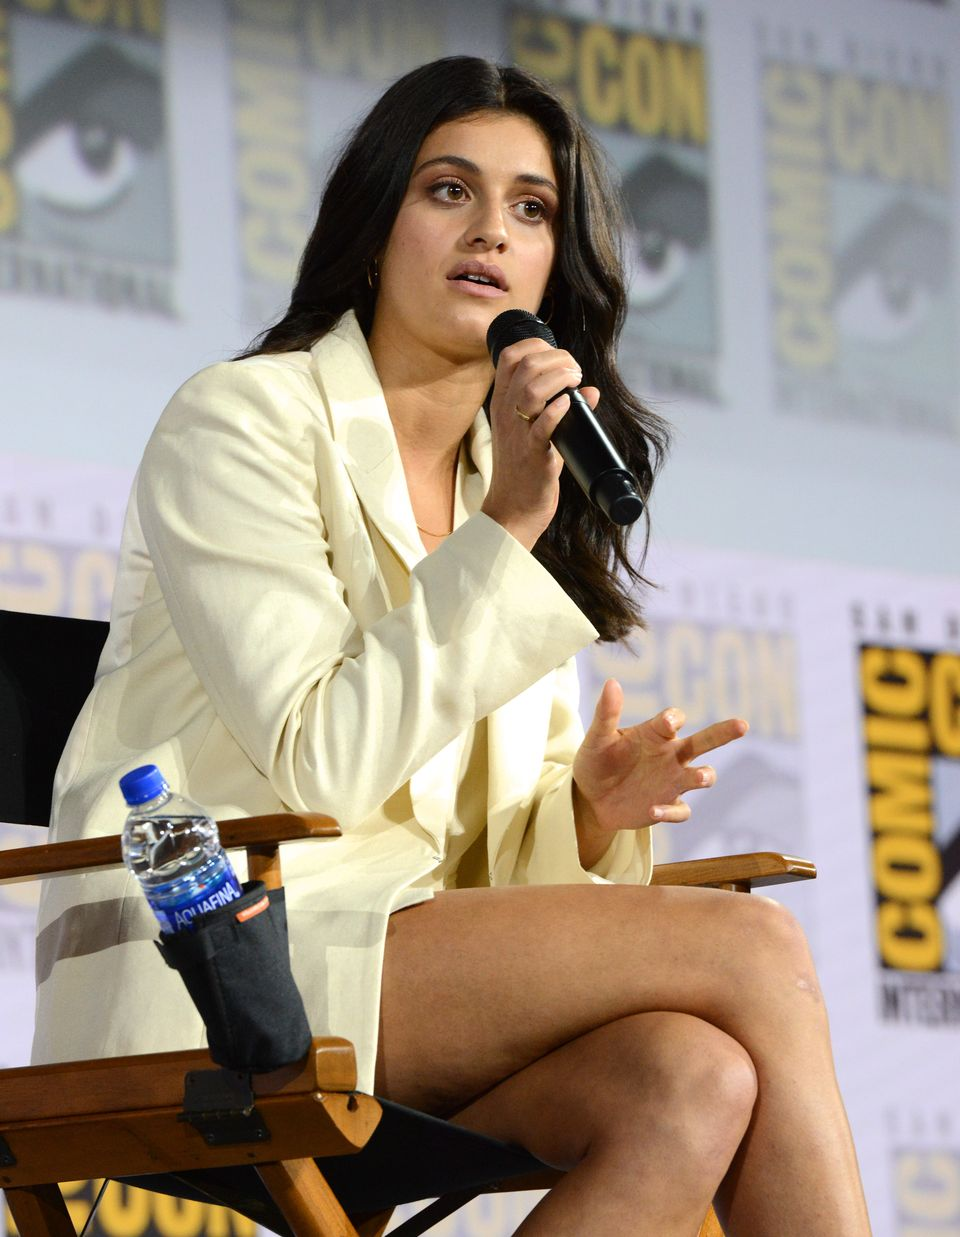 """Anya Chalotra at """"The Witcher"""": A Netflix Original Series Panel on July 19, 2019 in San Diego, California 